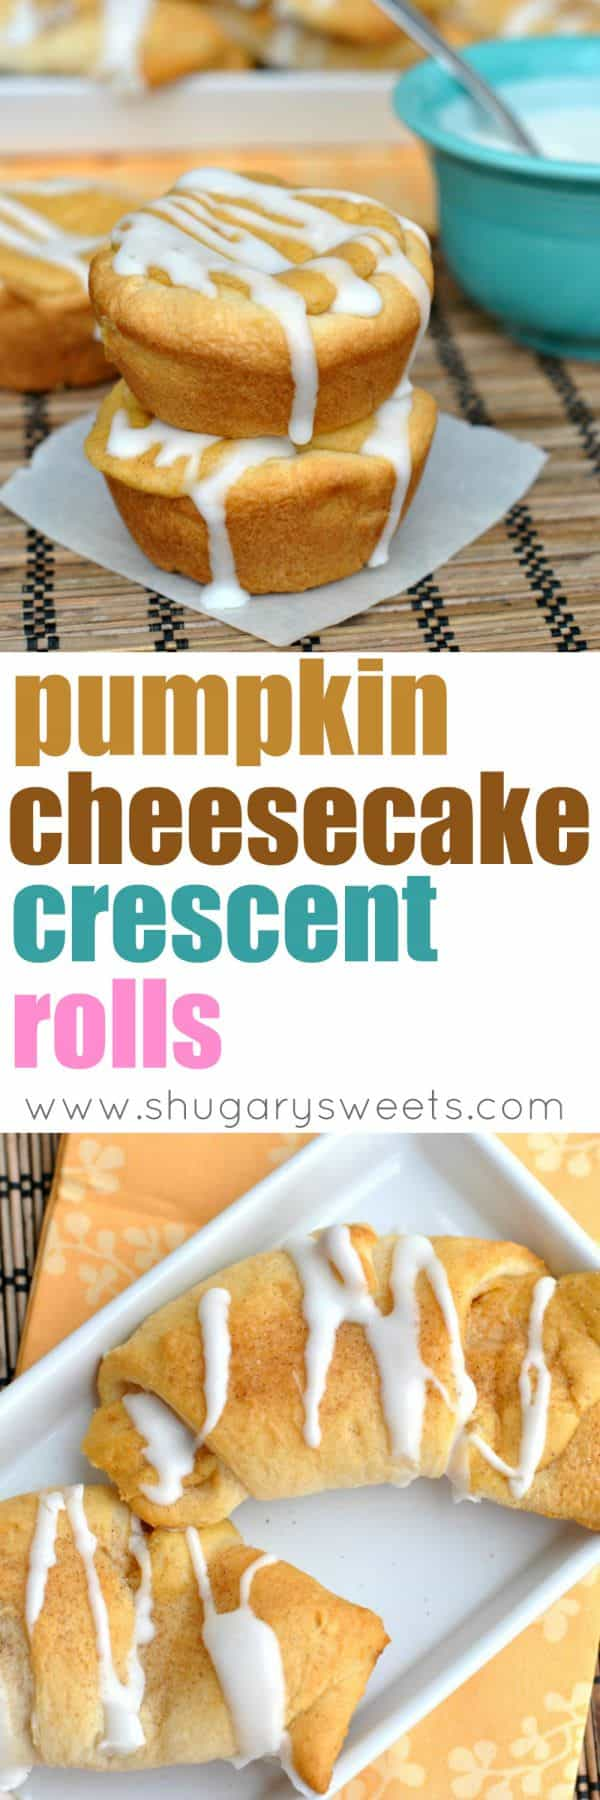 Fall is here and so are the Pumpkin recipes! These Pumpkin Cheesecake Crescent Rolls are the perfect breakfast on a chilly morning. Don't forget the cream cheese glaze!